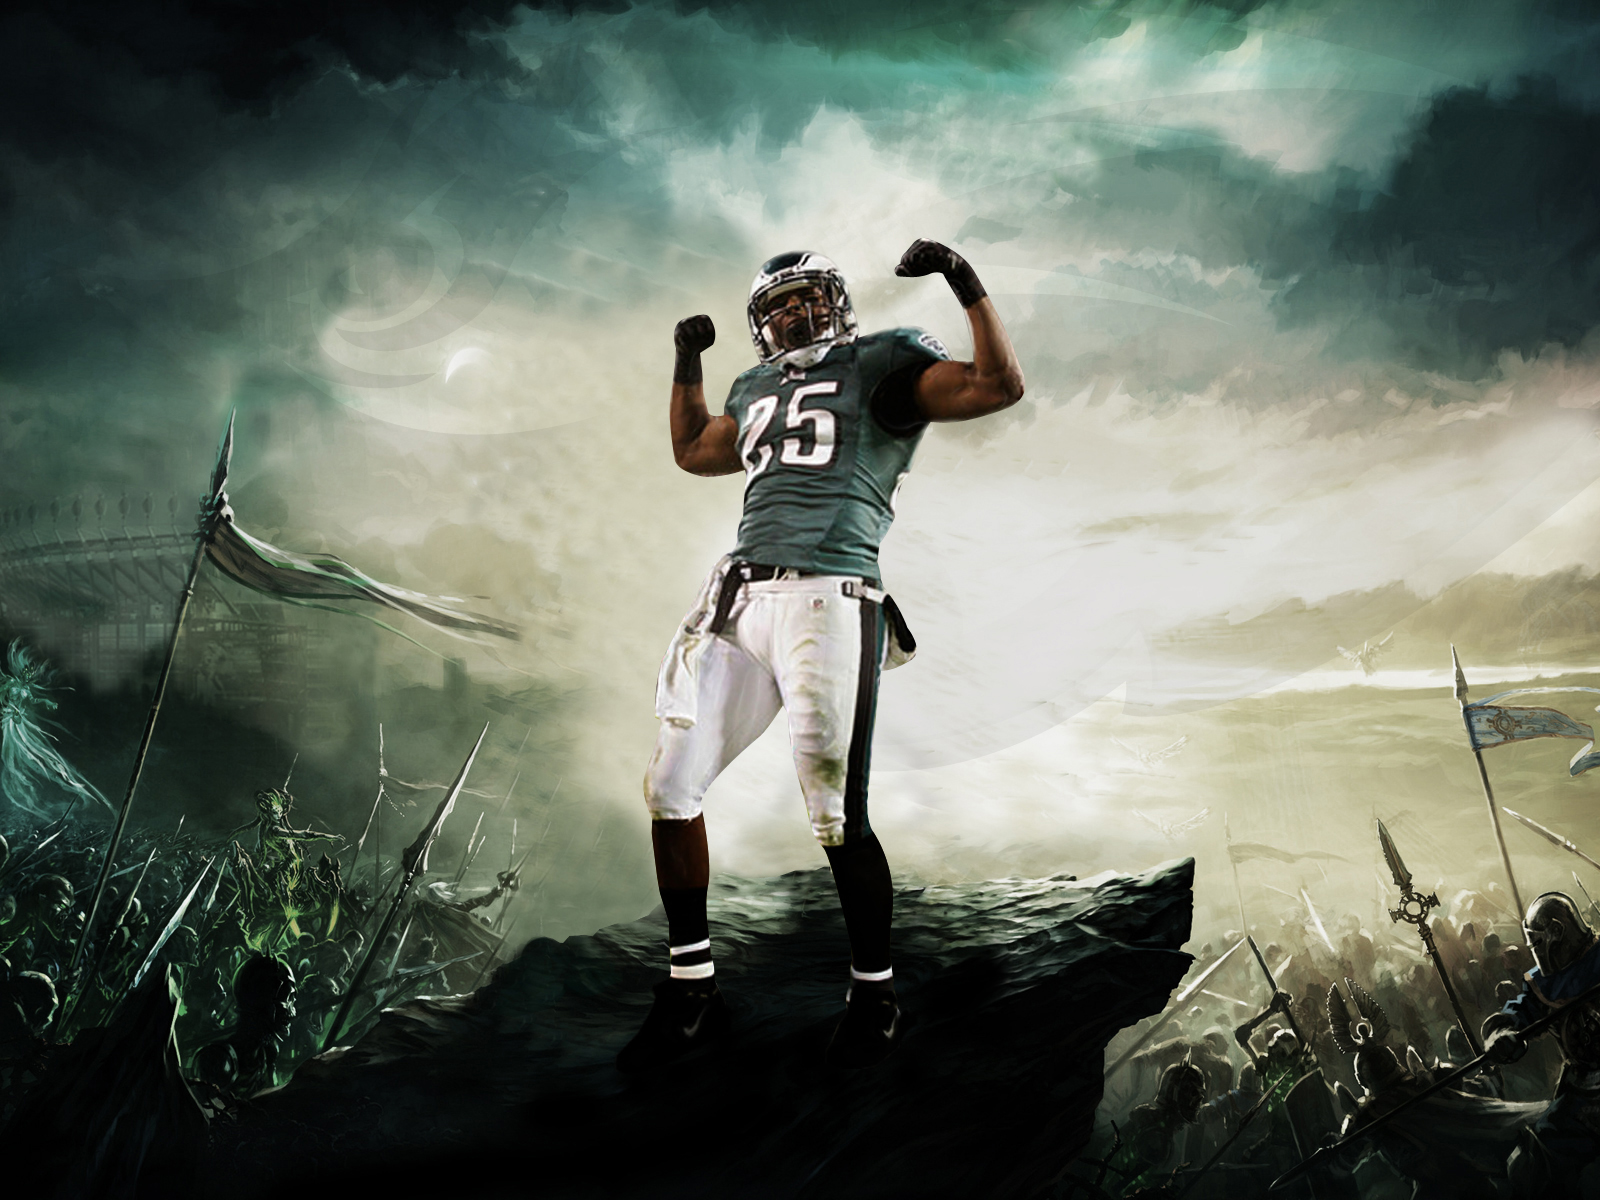 Wallpapers Backgrounds More NEW Lesean Shady McCoy Wallpaper 1600x1200